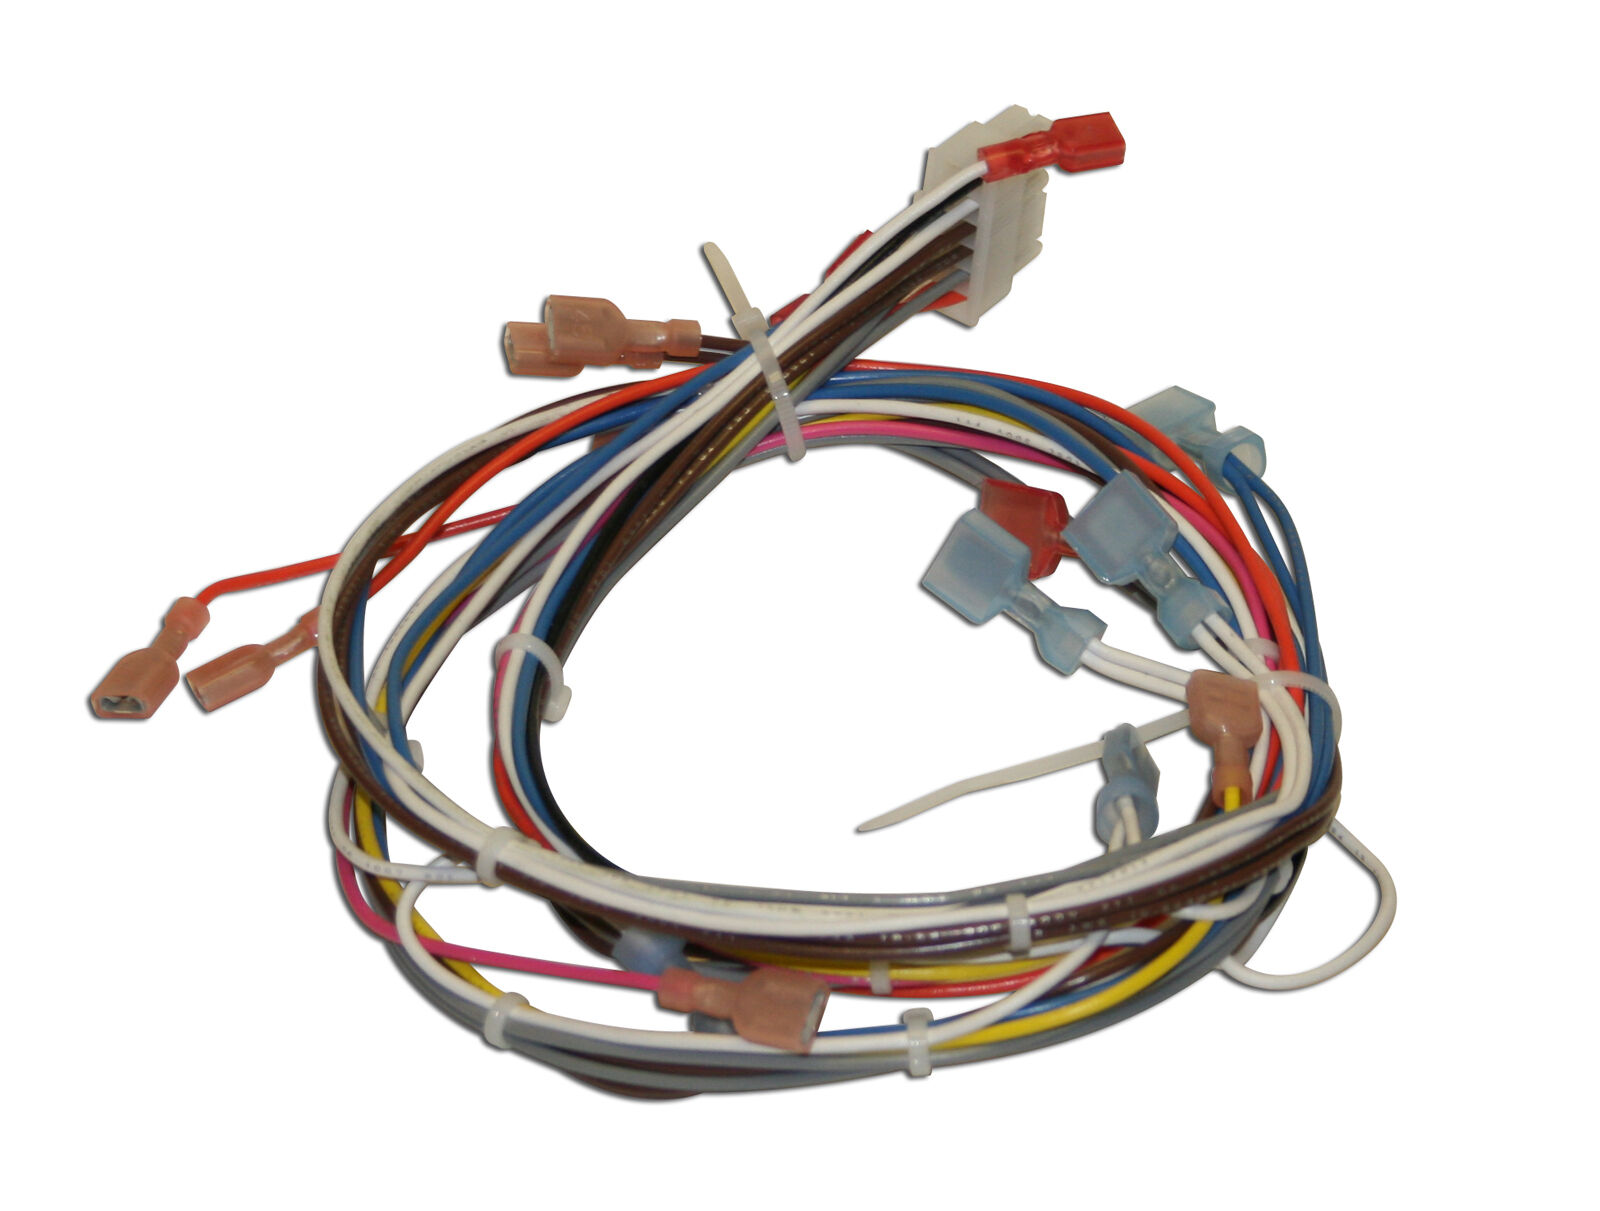 Winrich Touch Button Control Circuit Board Wiring Harness Manual Nail Mar30 Mar27